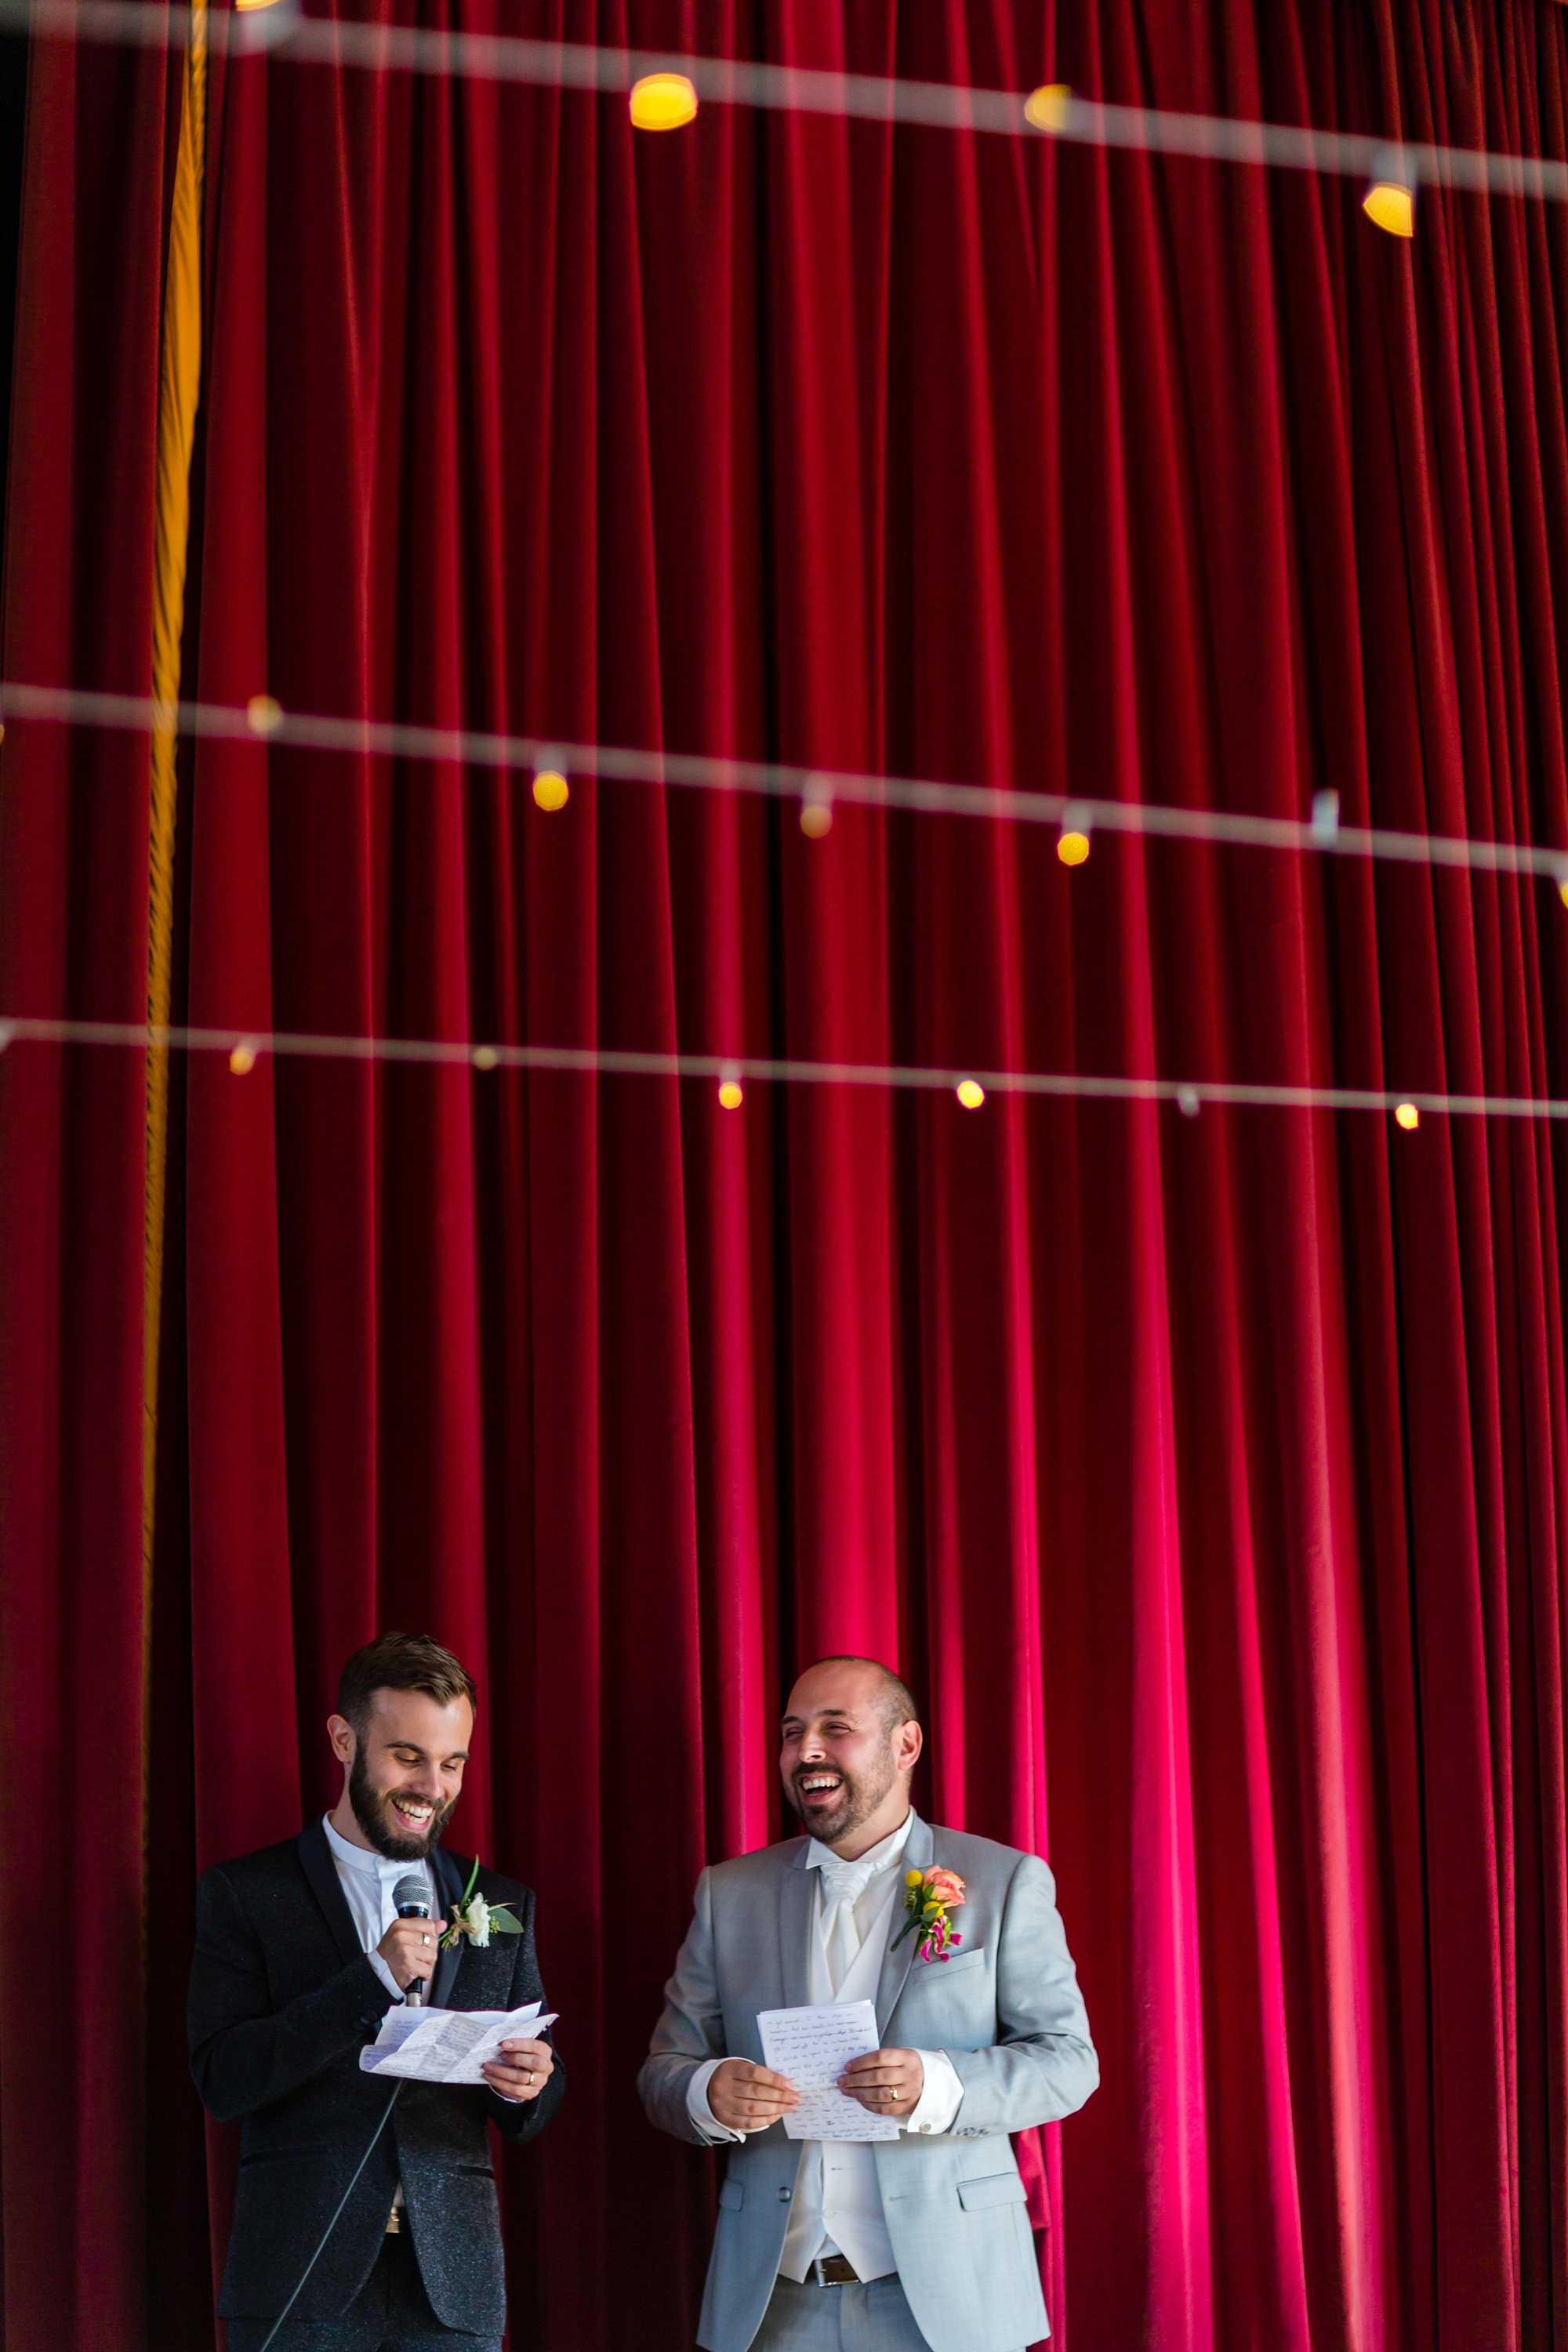 Grooms giving speeches in front of red curtain